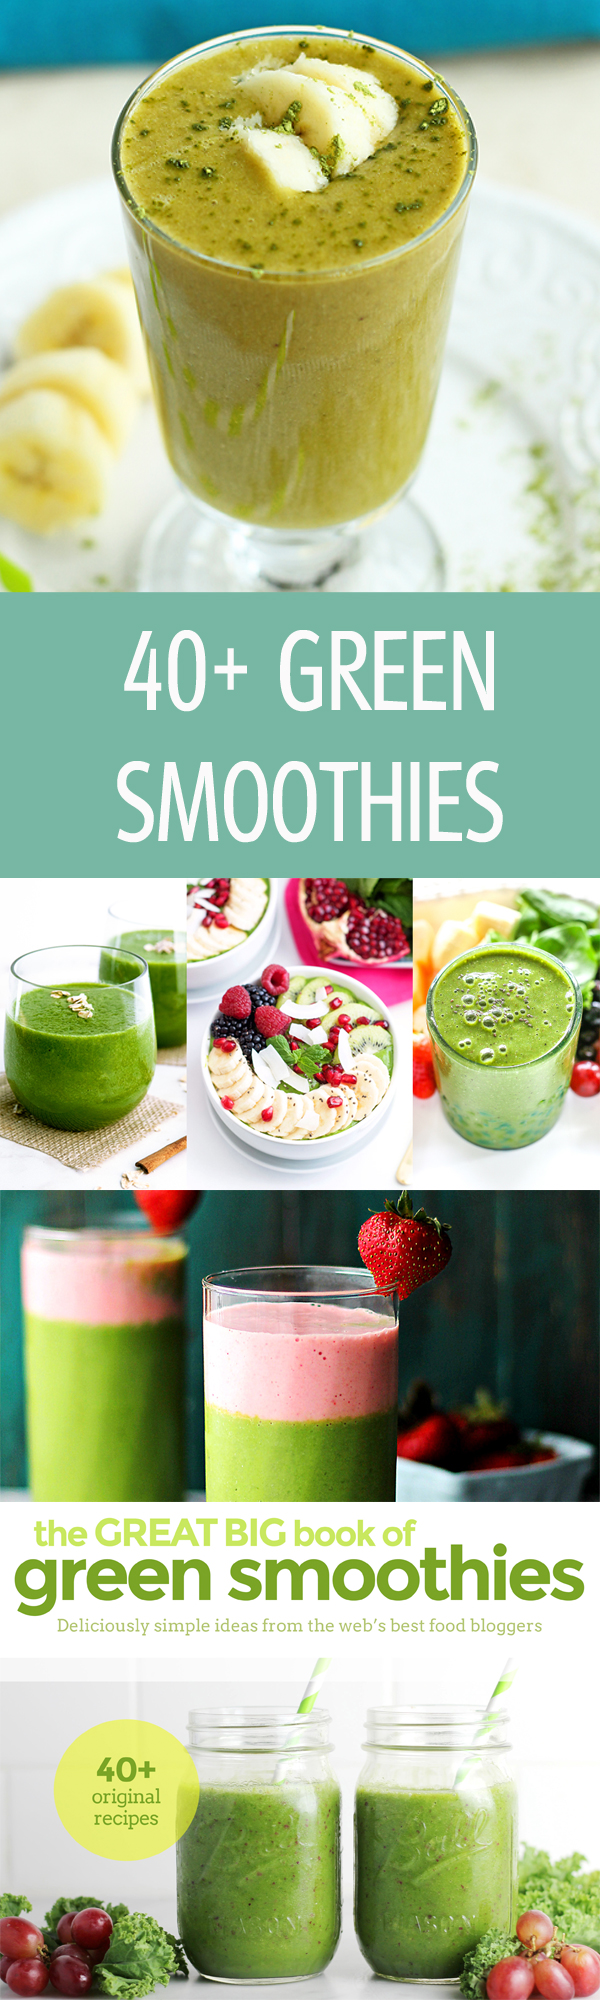 45 Brand new and original green smoothie recipes. No processed ingredients! Just healthy ways to enjoy real food and LOTS of leafy greens. PLUS You'll get these freebies....@ilonaspassion